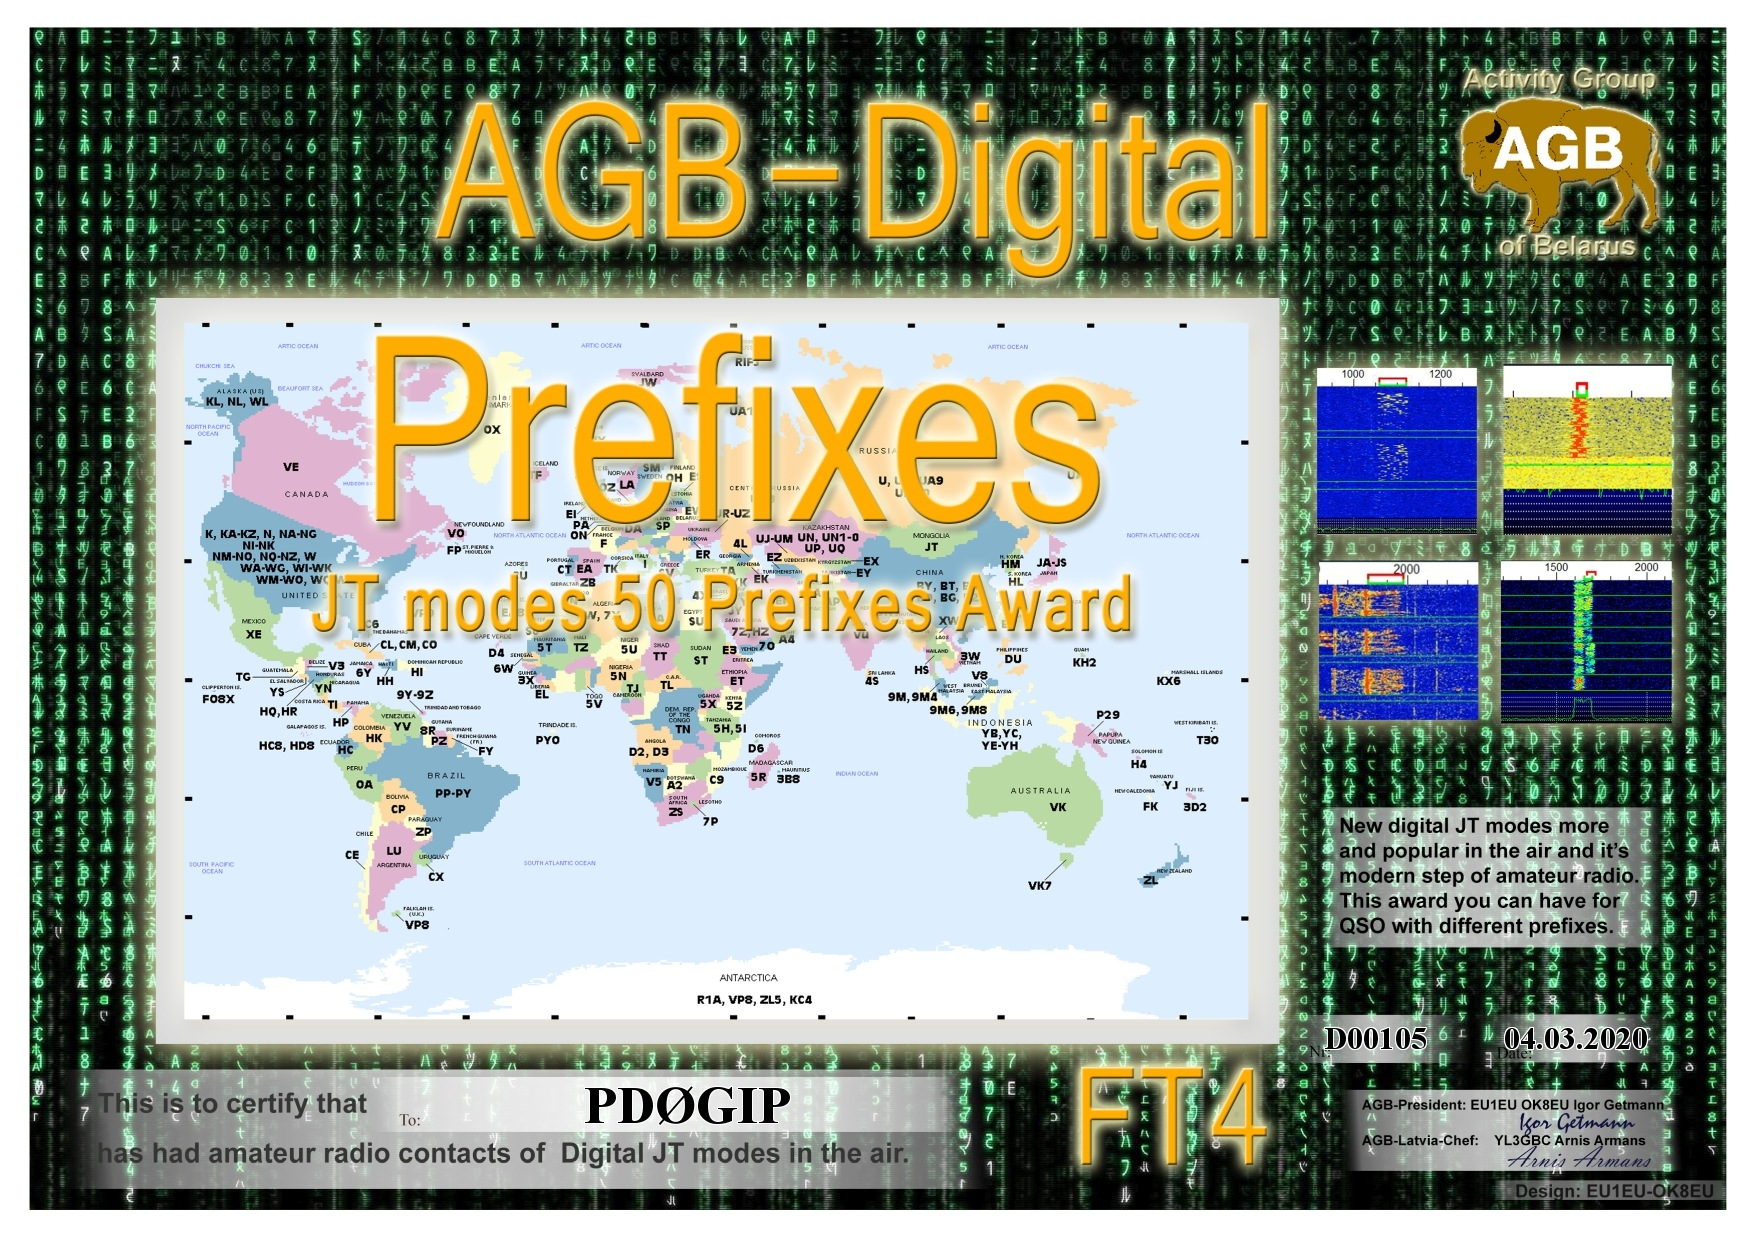 PD0GIP PREFIXES FT4 50 AGB